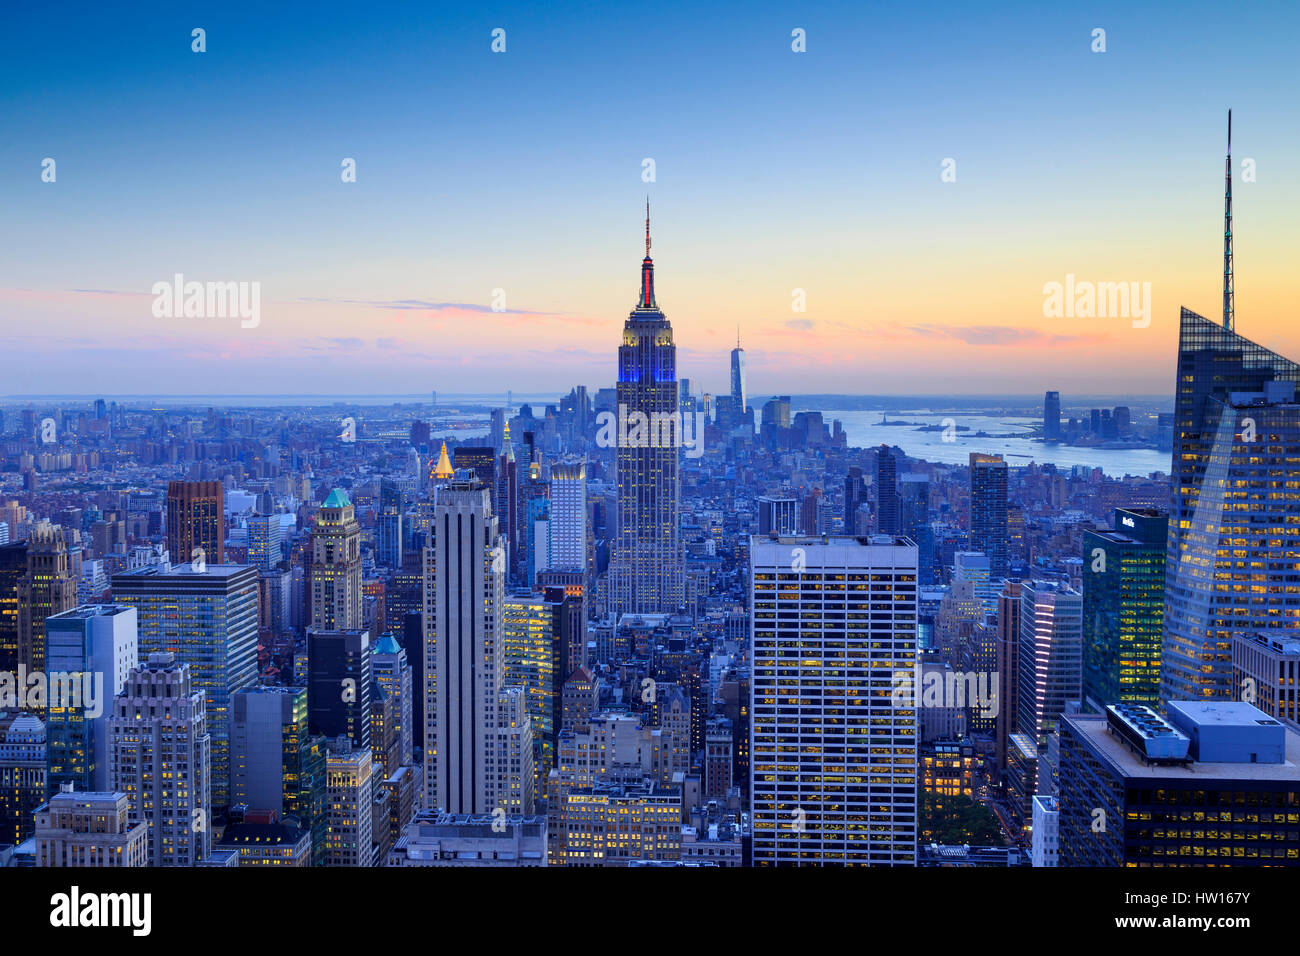 USA, New York, Manhattan, l'Observatoire Top of the Rock, Midtown Manhattan et Empire State Building Photo Stock